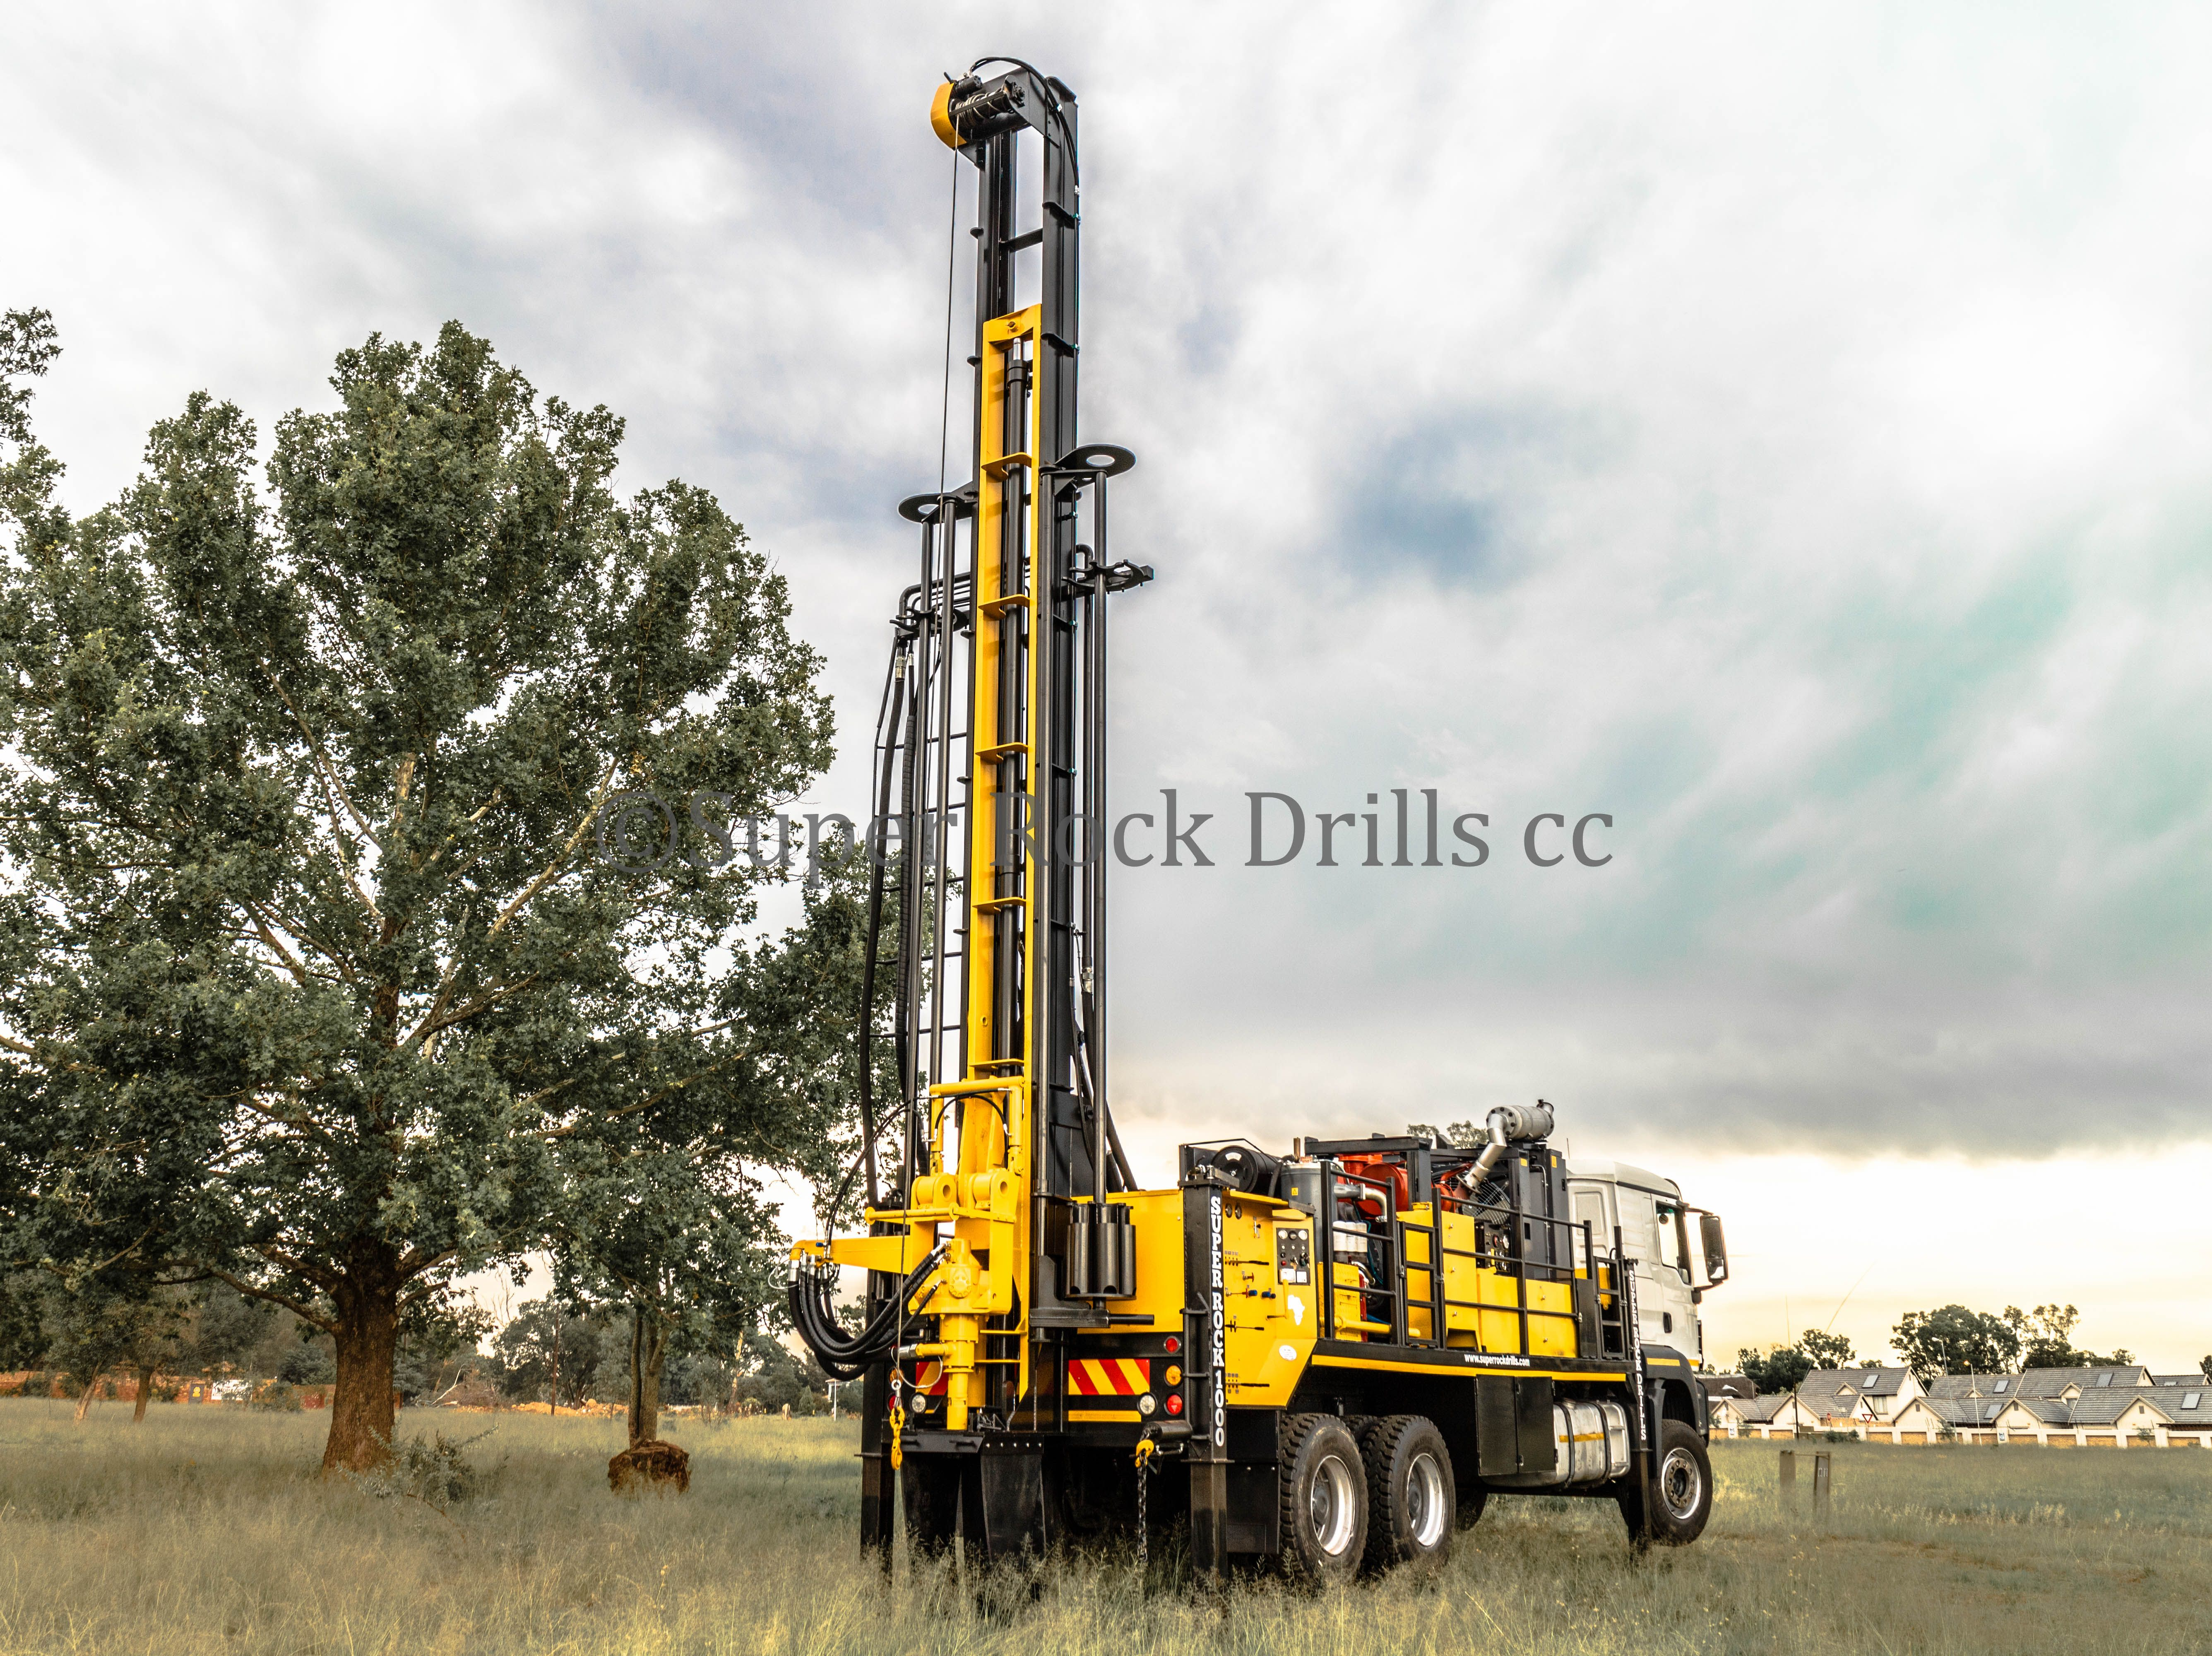 A Super Rock 1000 Water Well Drill Rig Manufactured By Super Rock Drills Cc Drilling Rig Water Well Drilling Drill